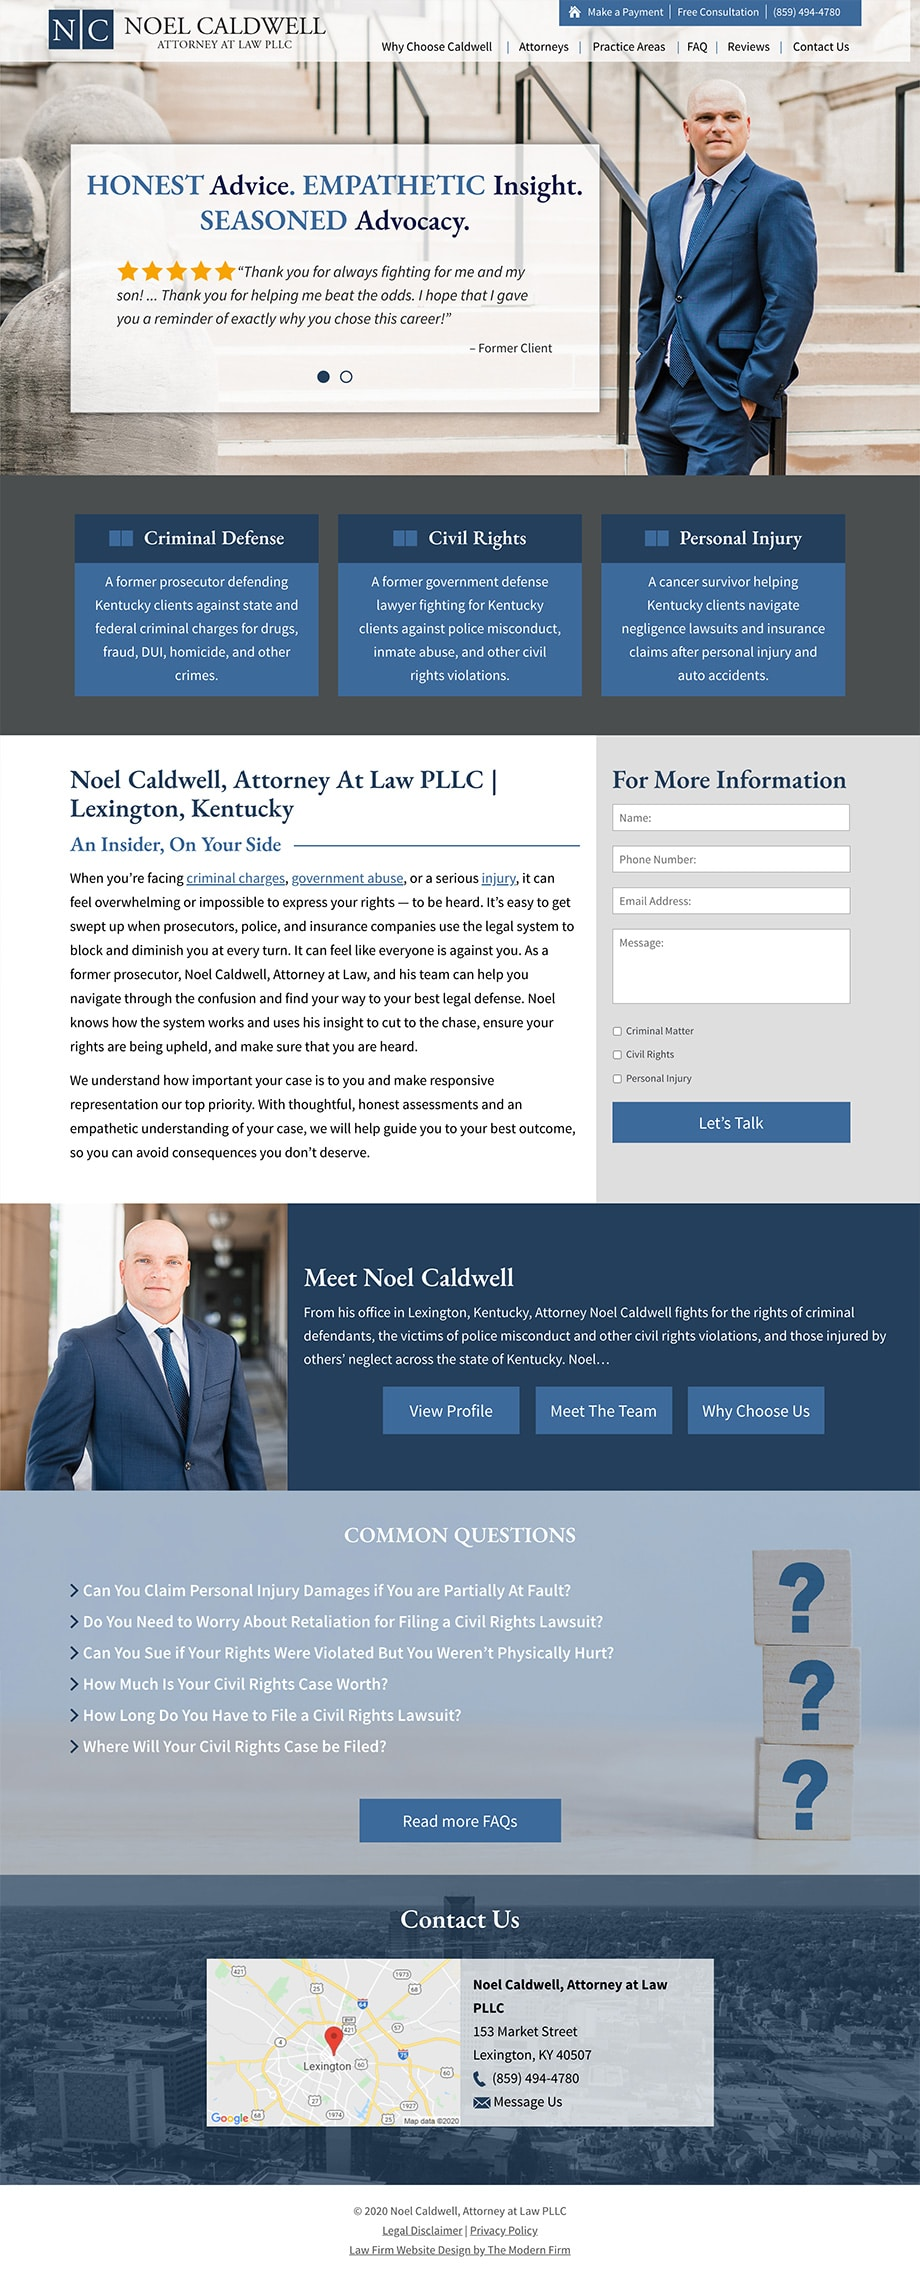 Law Firm Website Design for Noel Caldwell, Attorney at Law PLLC